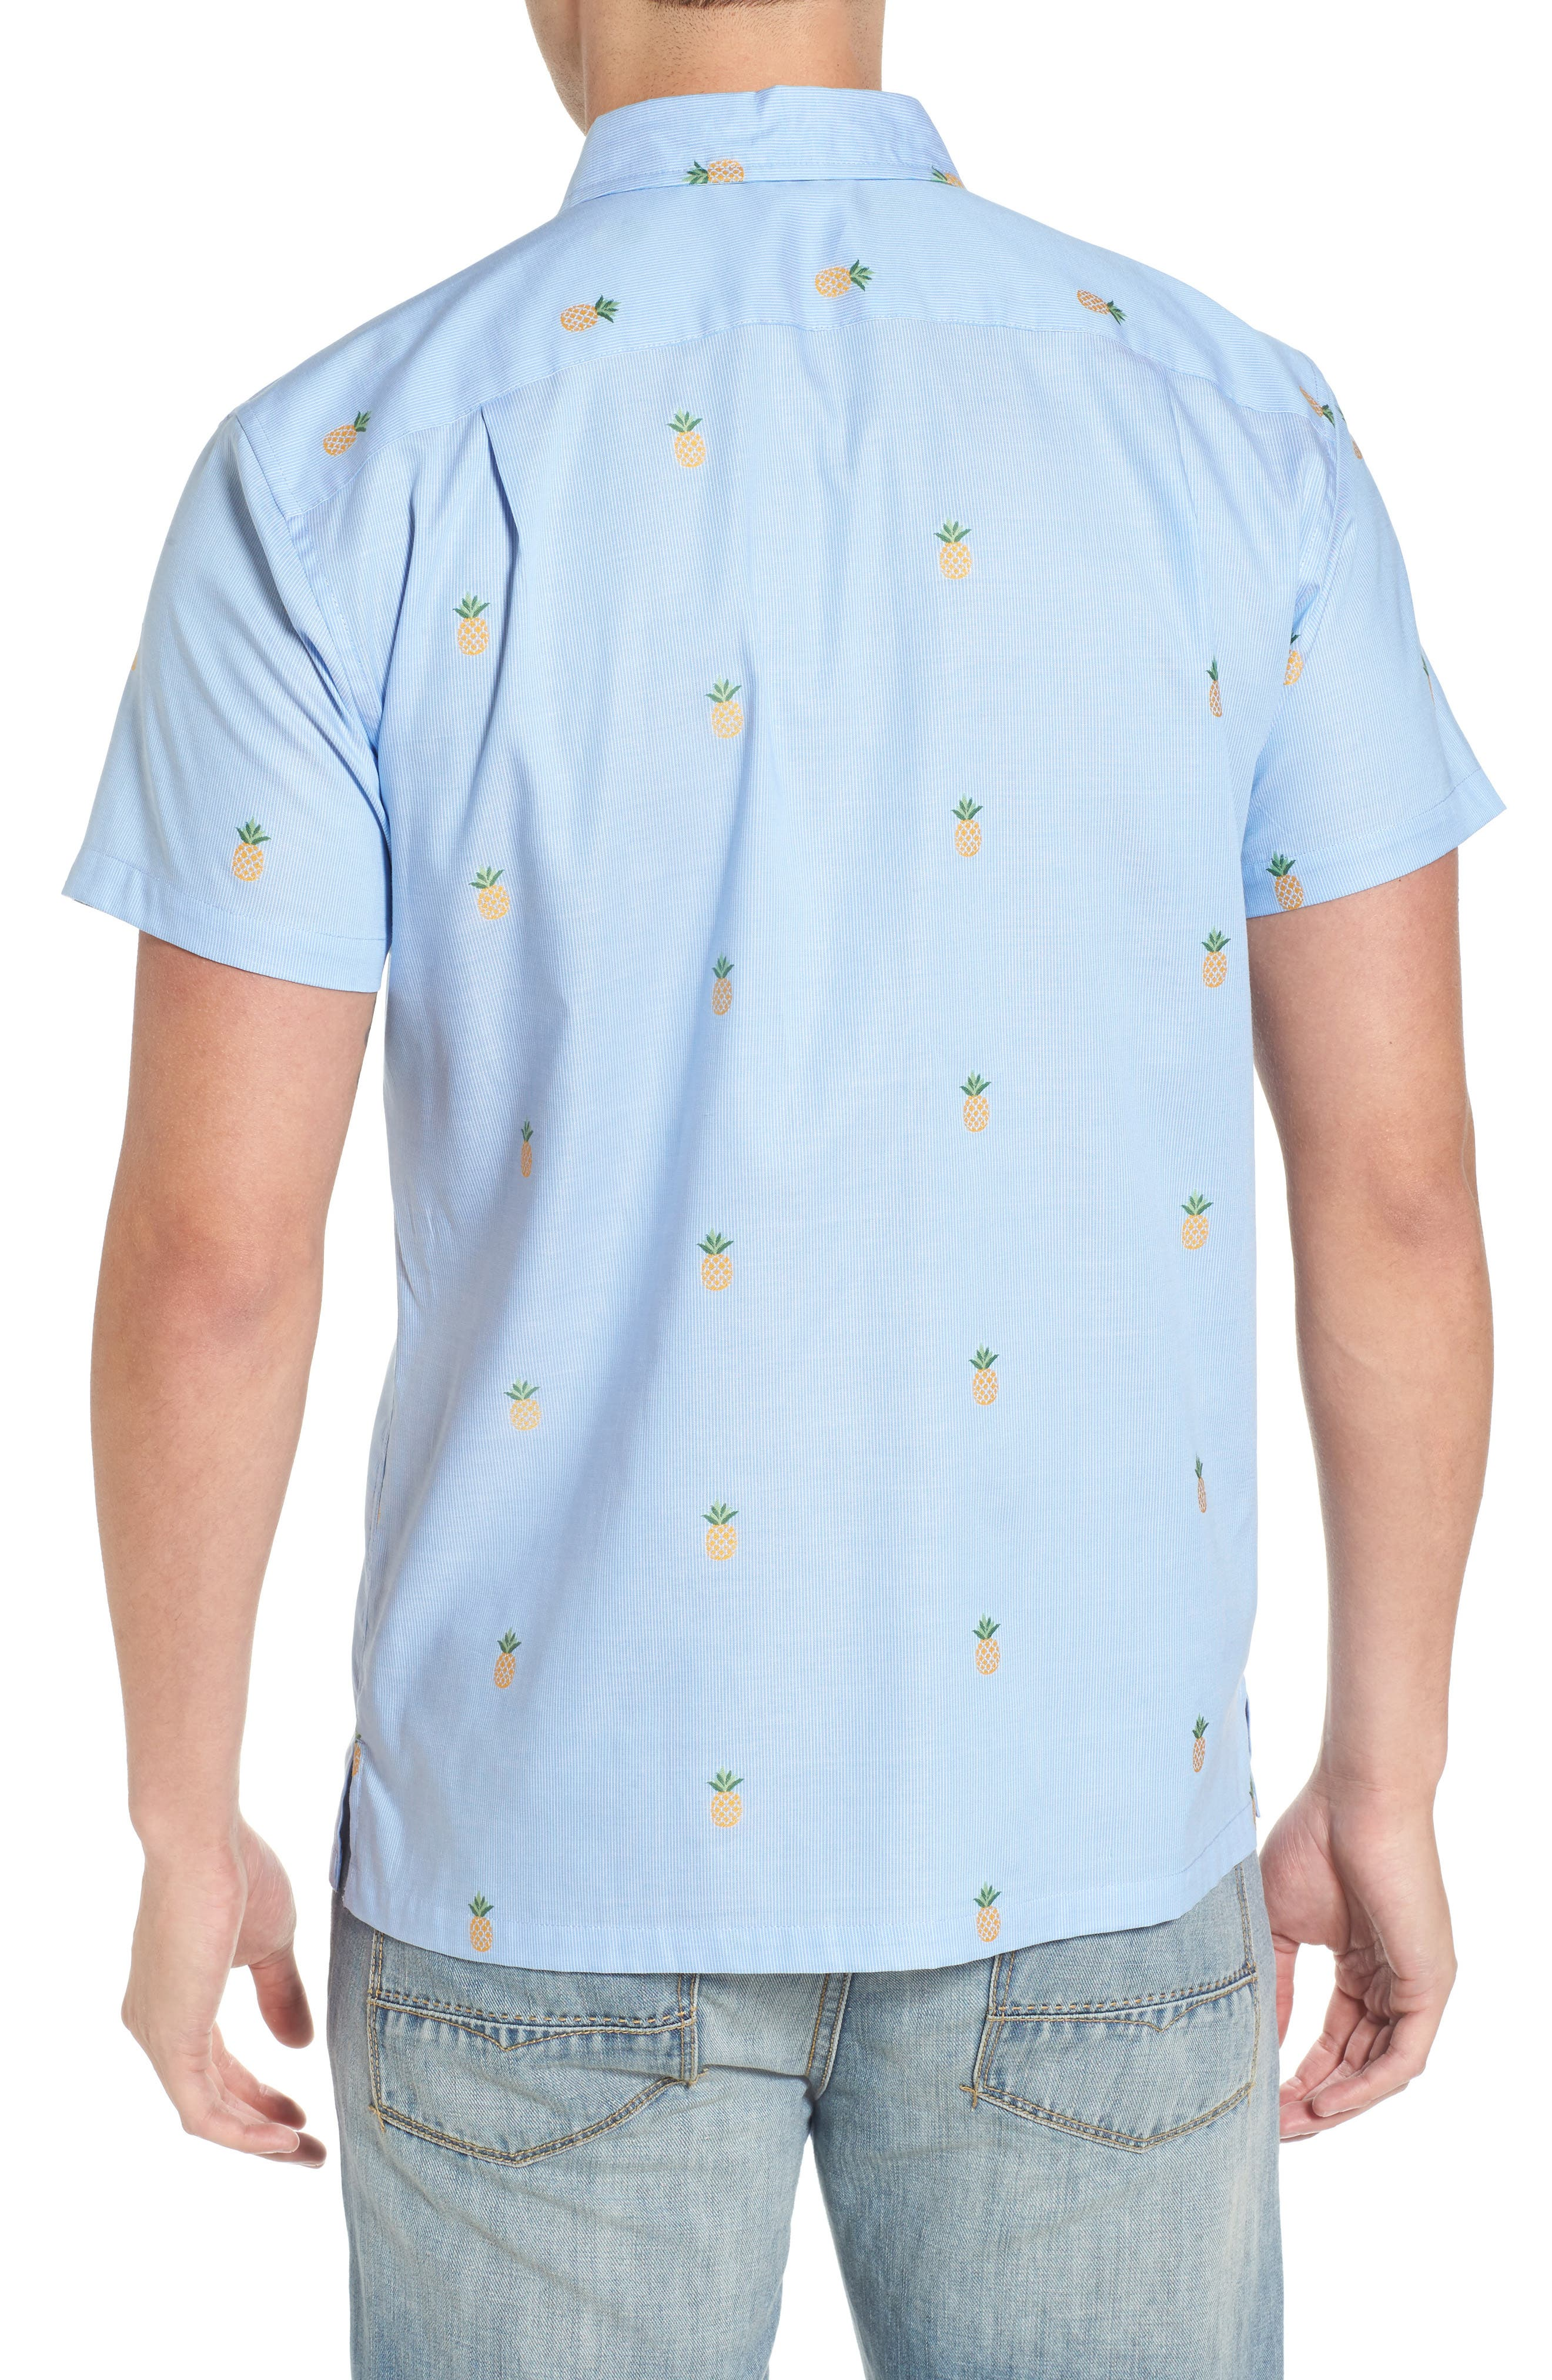 Dole 'N' Row Trim Fit Embroidered Sport Shirt,                             Alternate thumbnail 2, color,                             409